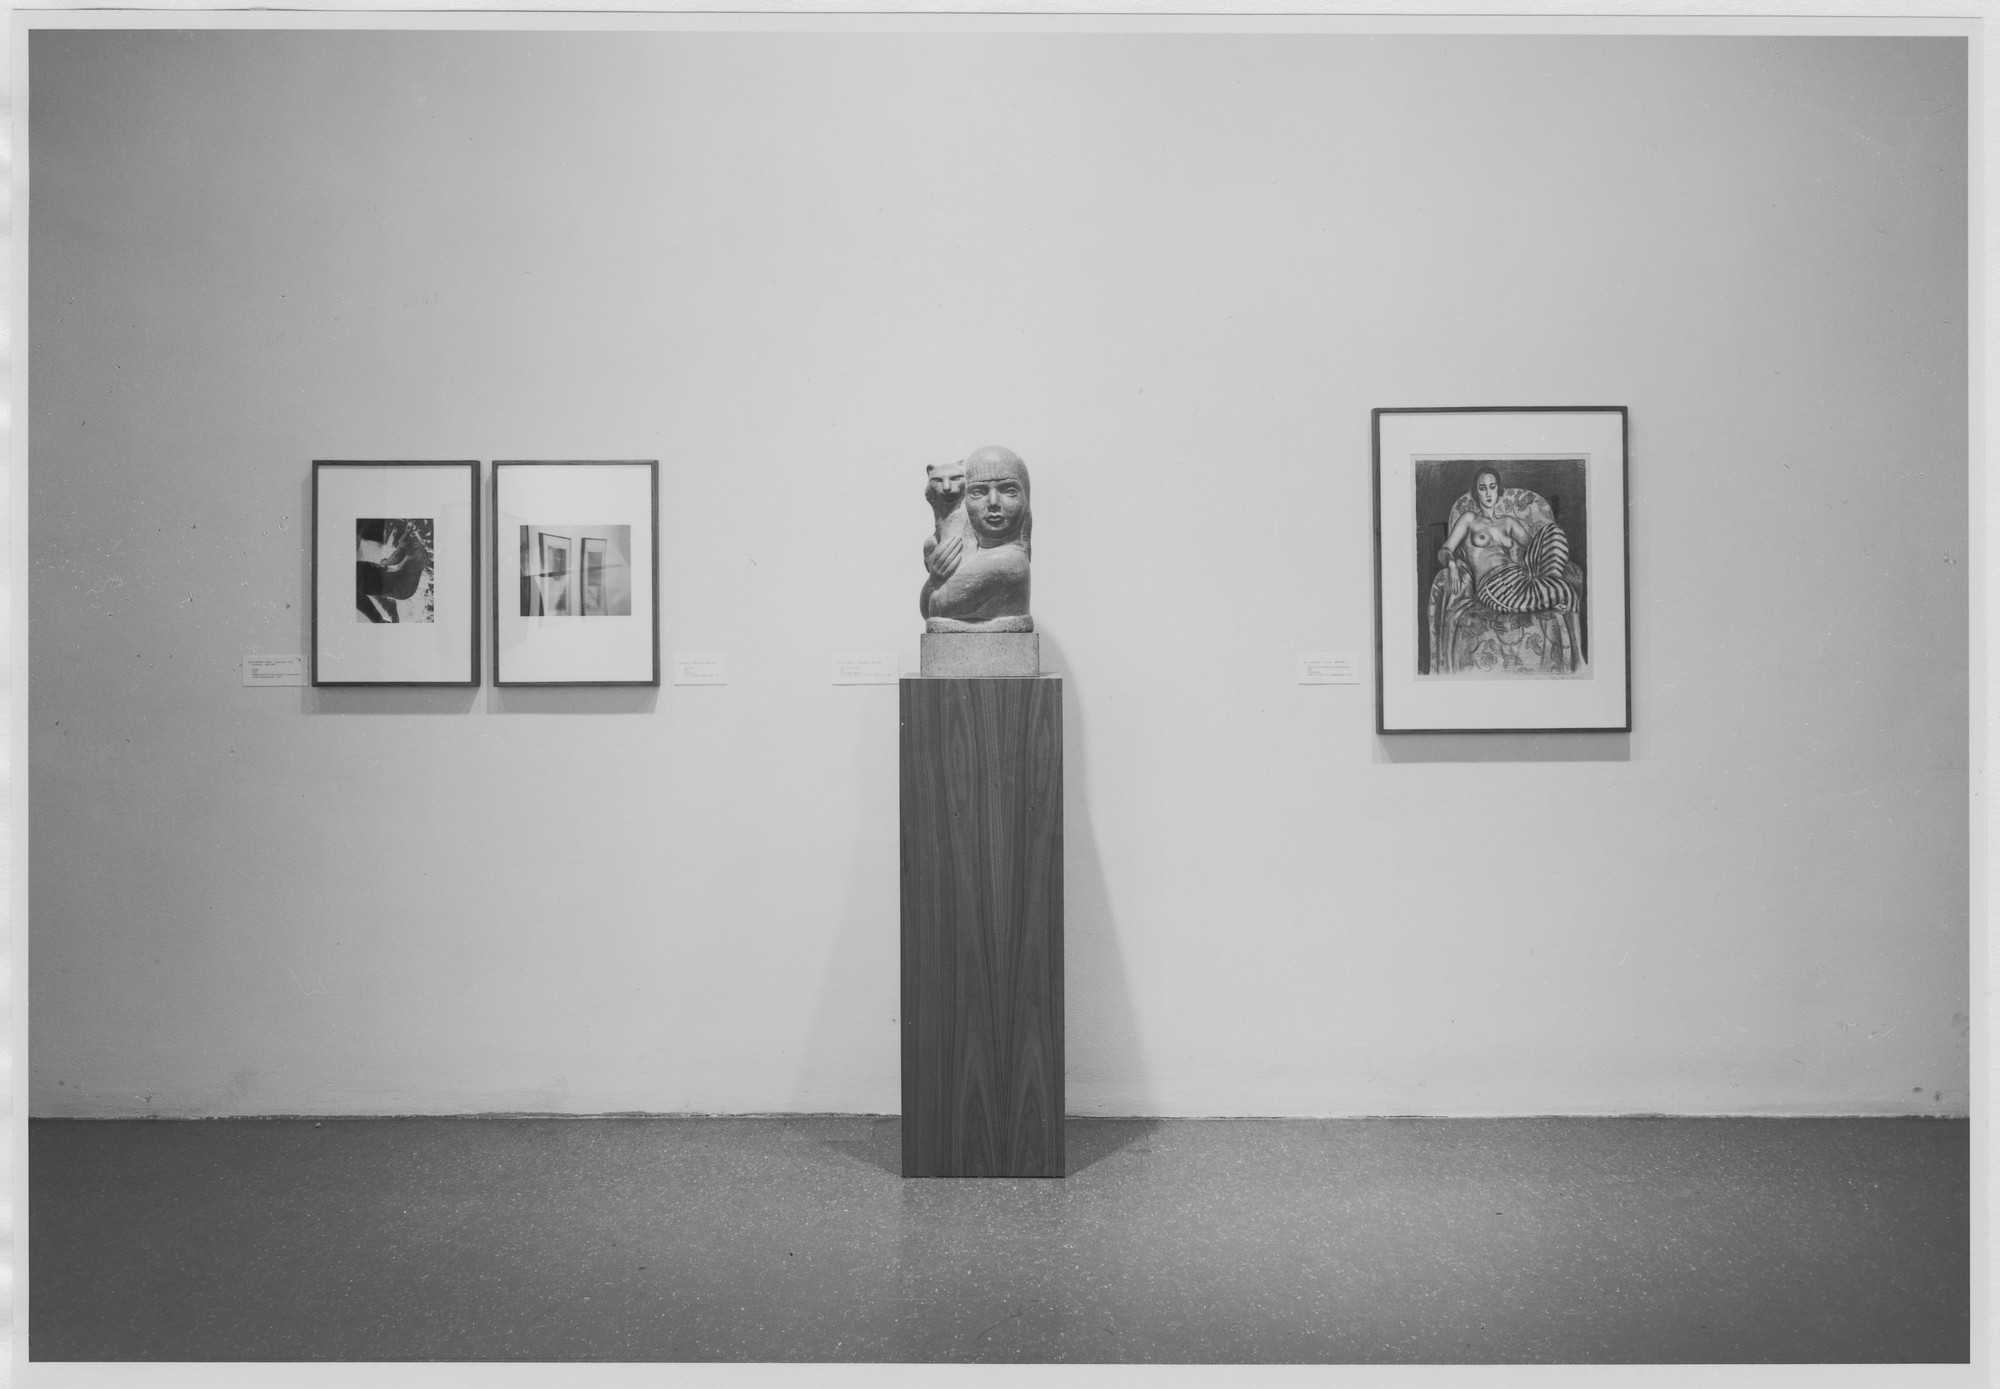 "Installation view of the exhibition, ""Art of the Twenties"" November 14, 1979–January 22, 1980. Photographic Archive. The Museum of Modern Art Archives, New York. IN1277.1. Photograph by Mali Olatunji."